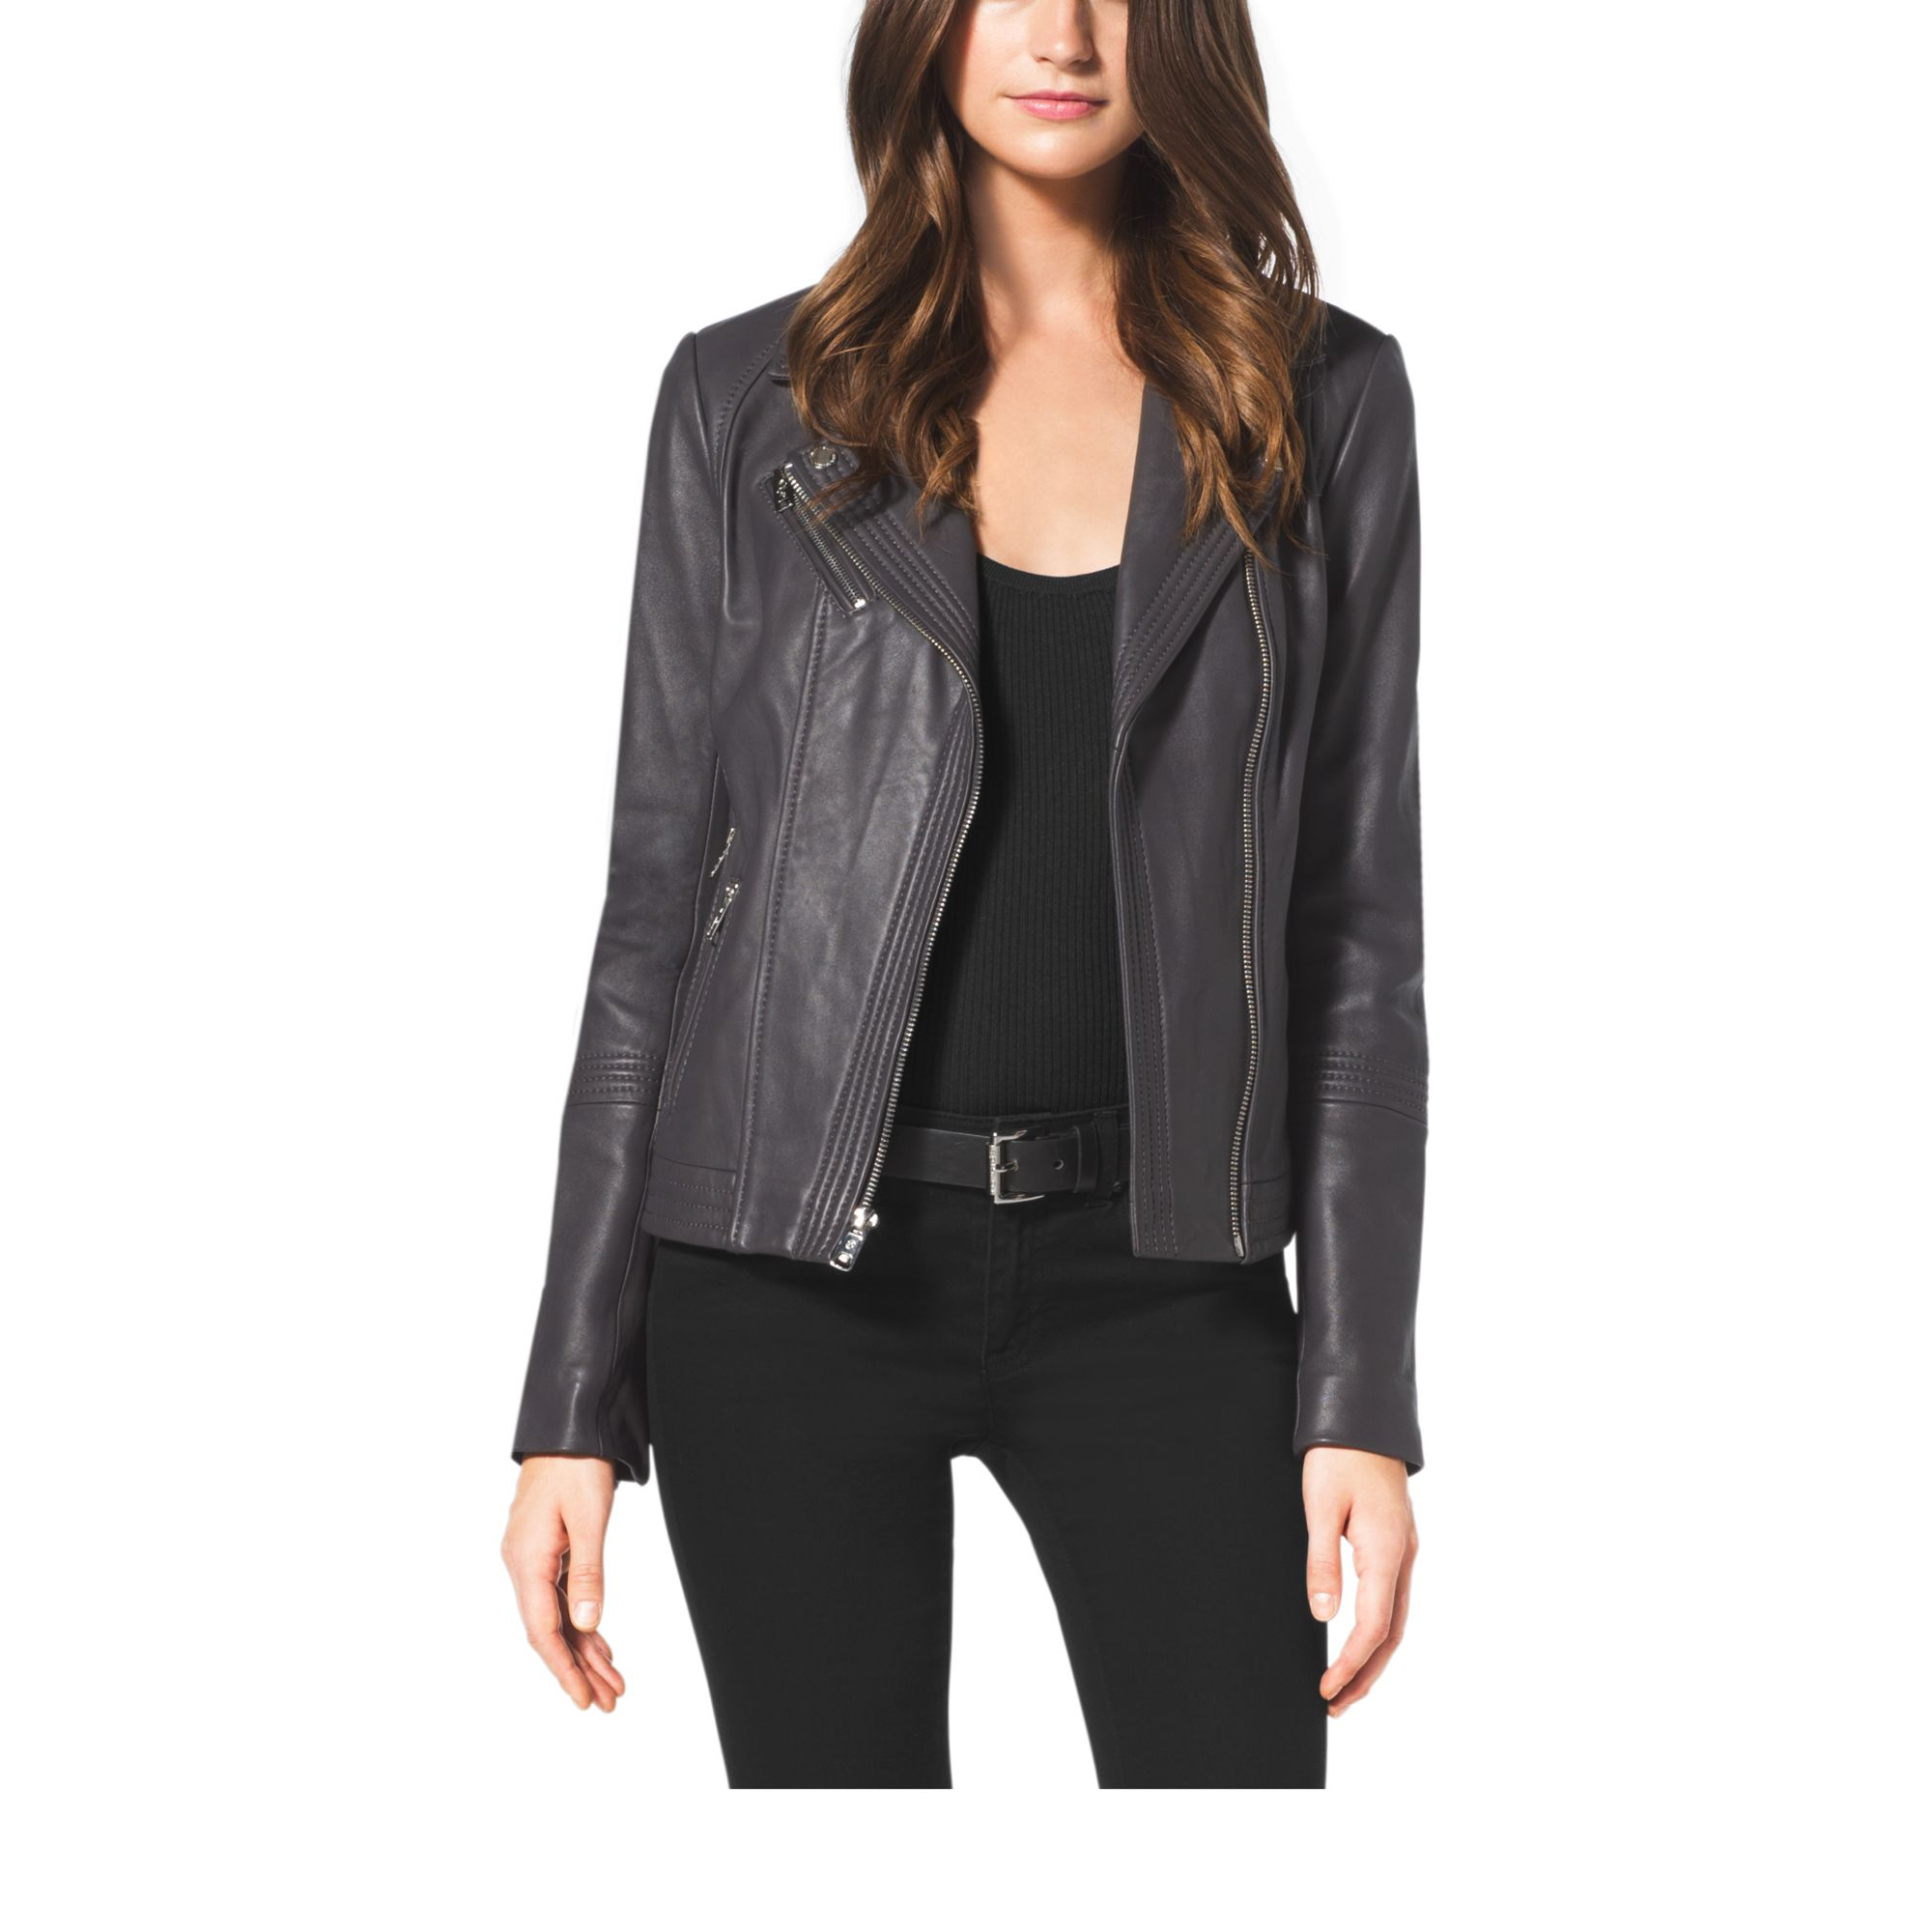 michael kors leather moto jacket in gray lyst. Black Bedroom Furniture Sets. Home Design Ideas